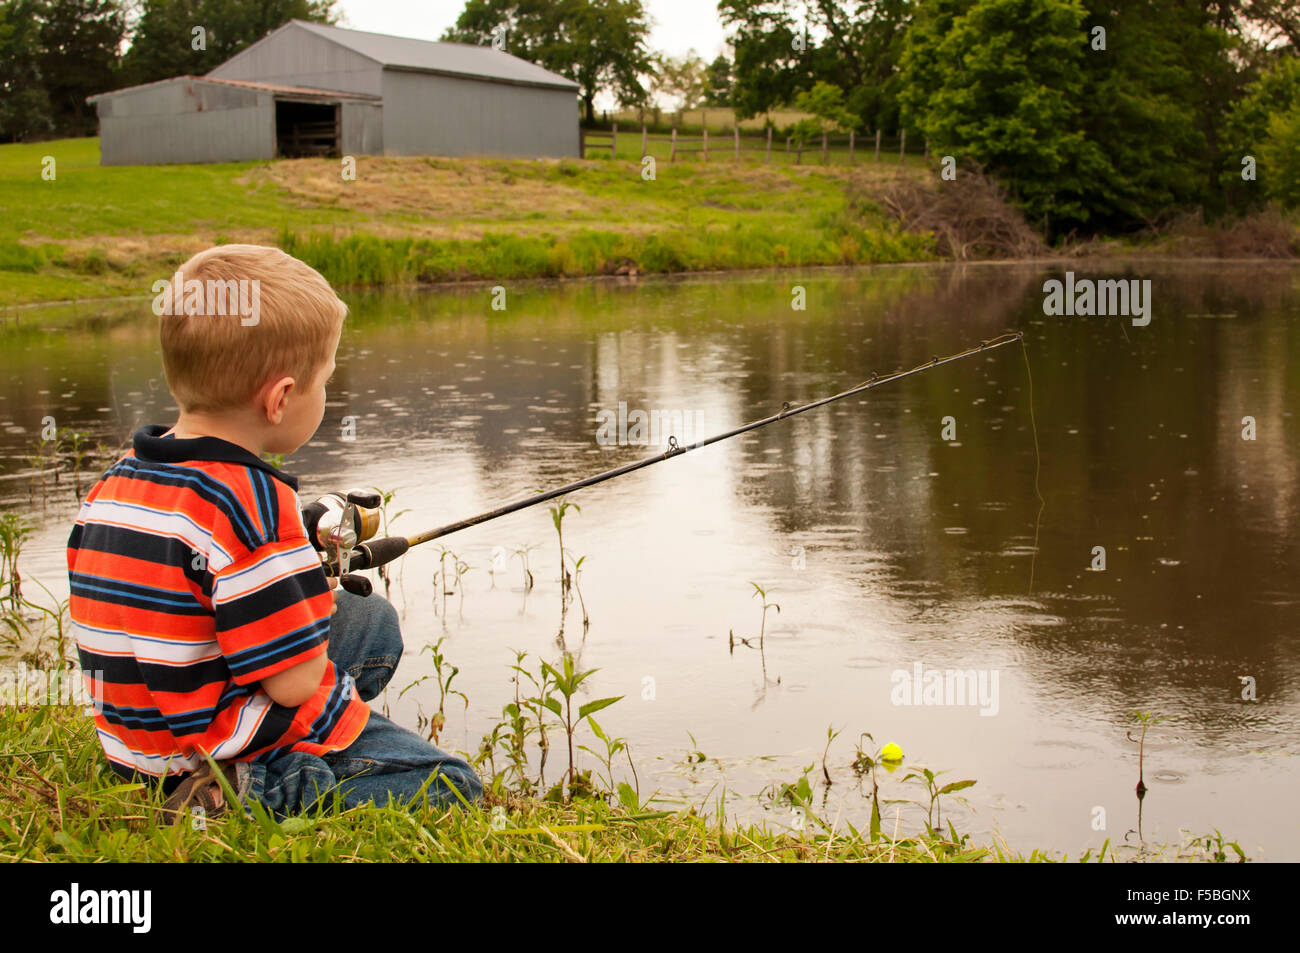 Young boy fishing in pond. - Stock Image